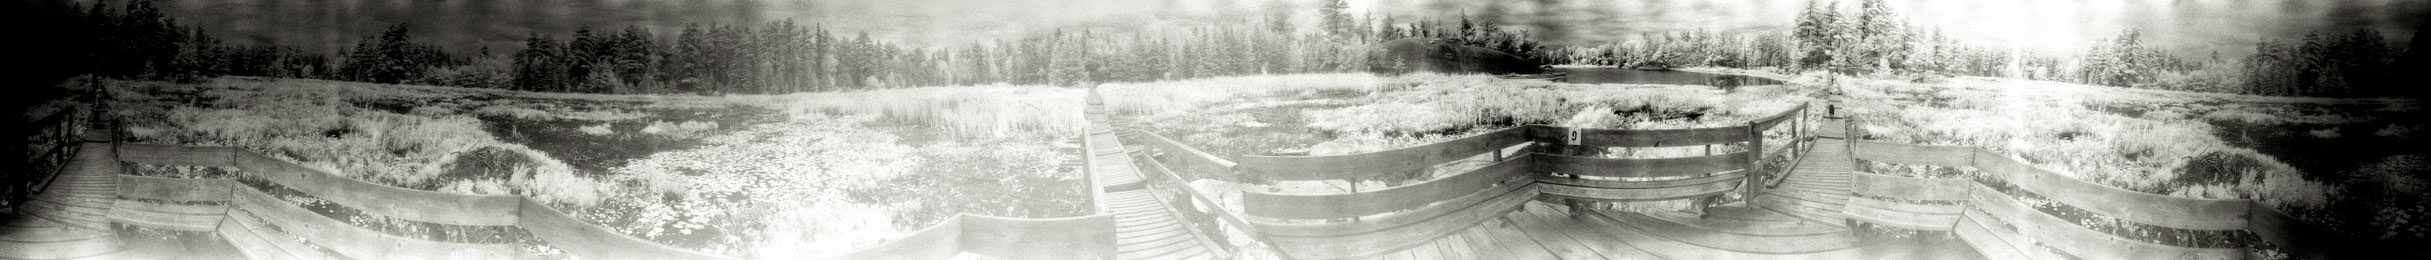 """""""Viewing Platform At the Center of a Bog"""" from the series Footprints, by William Mokrynski"""